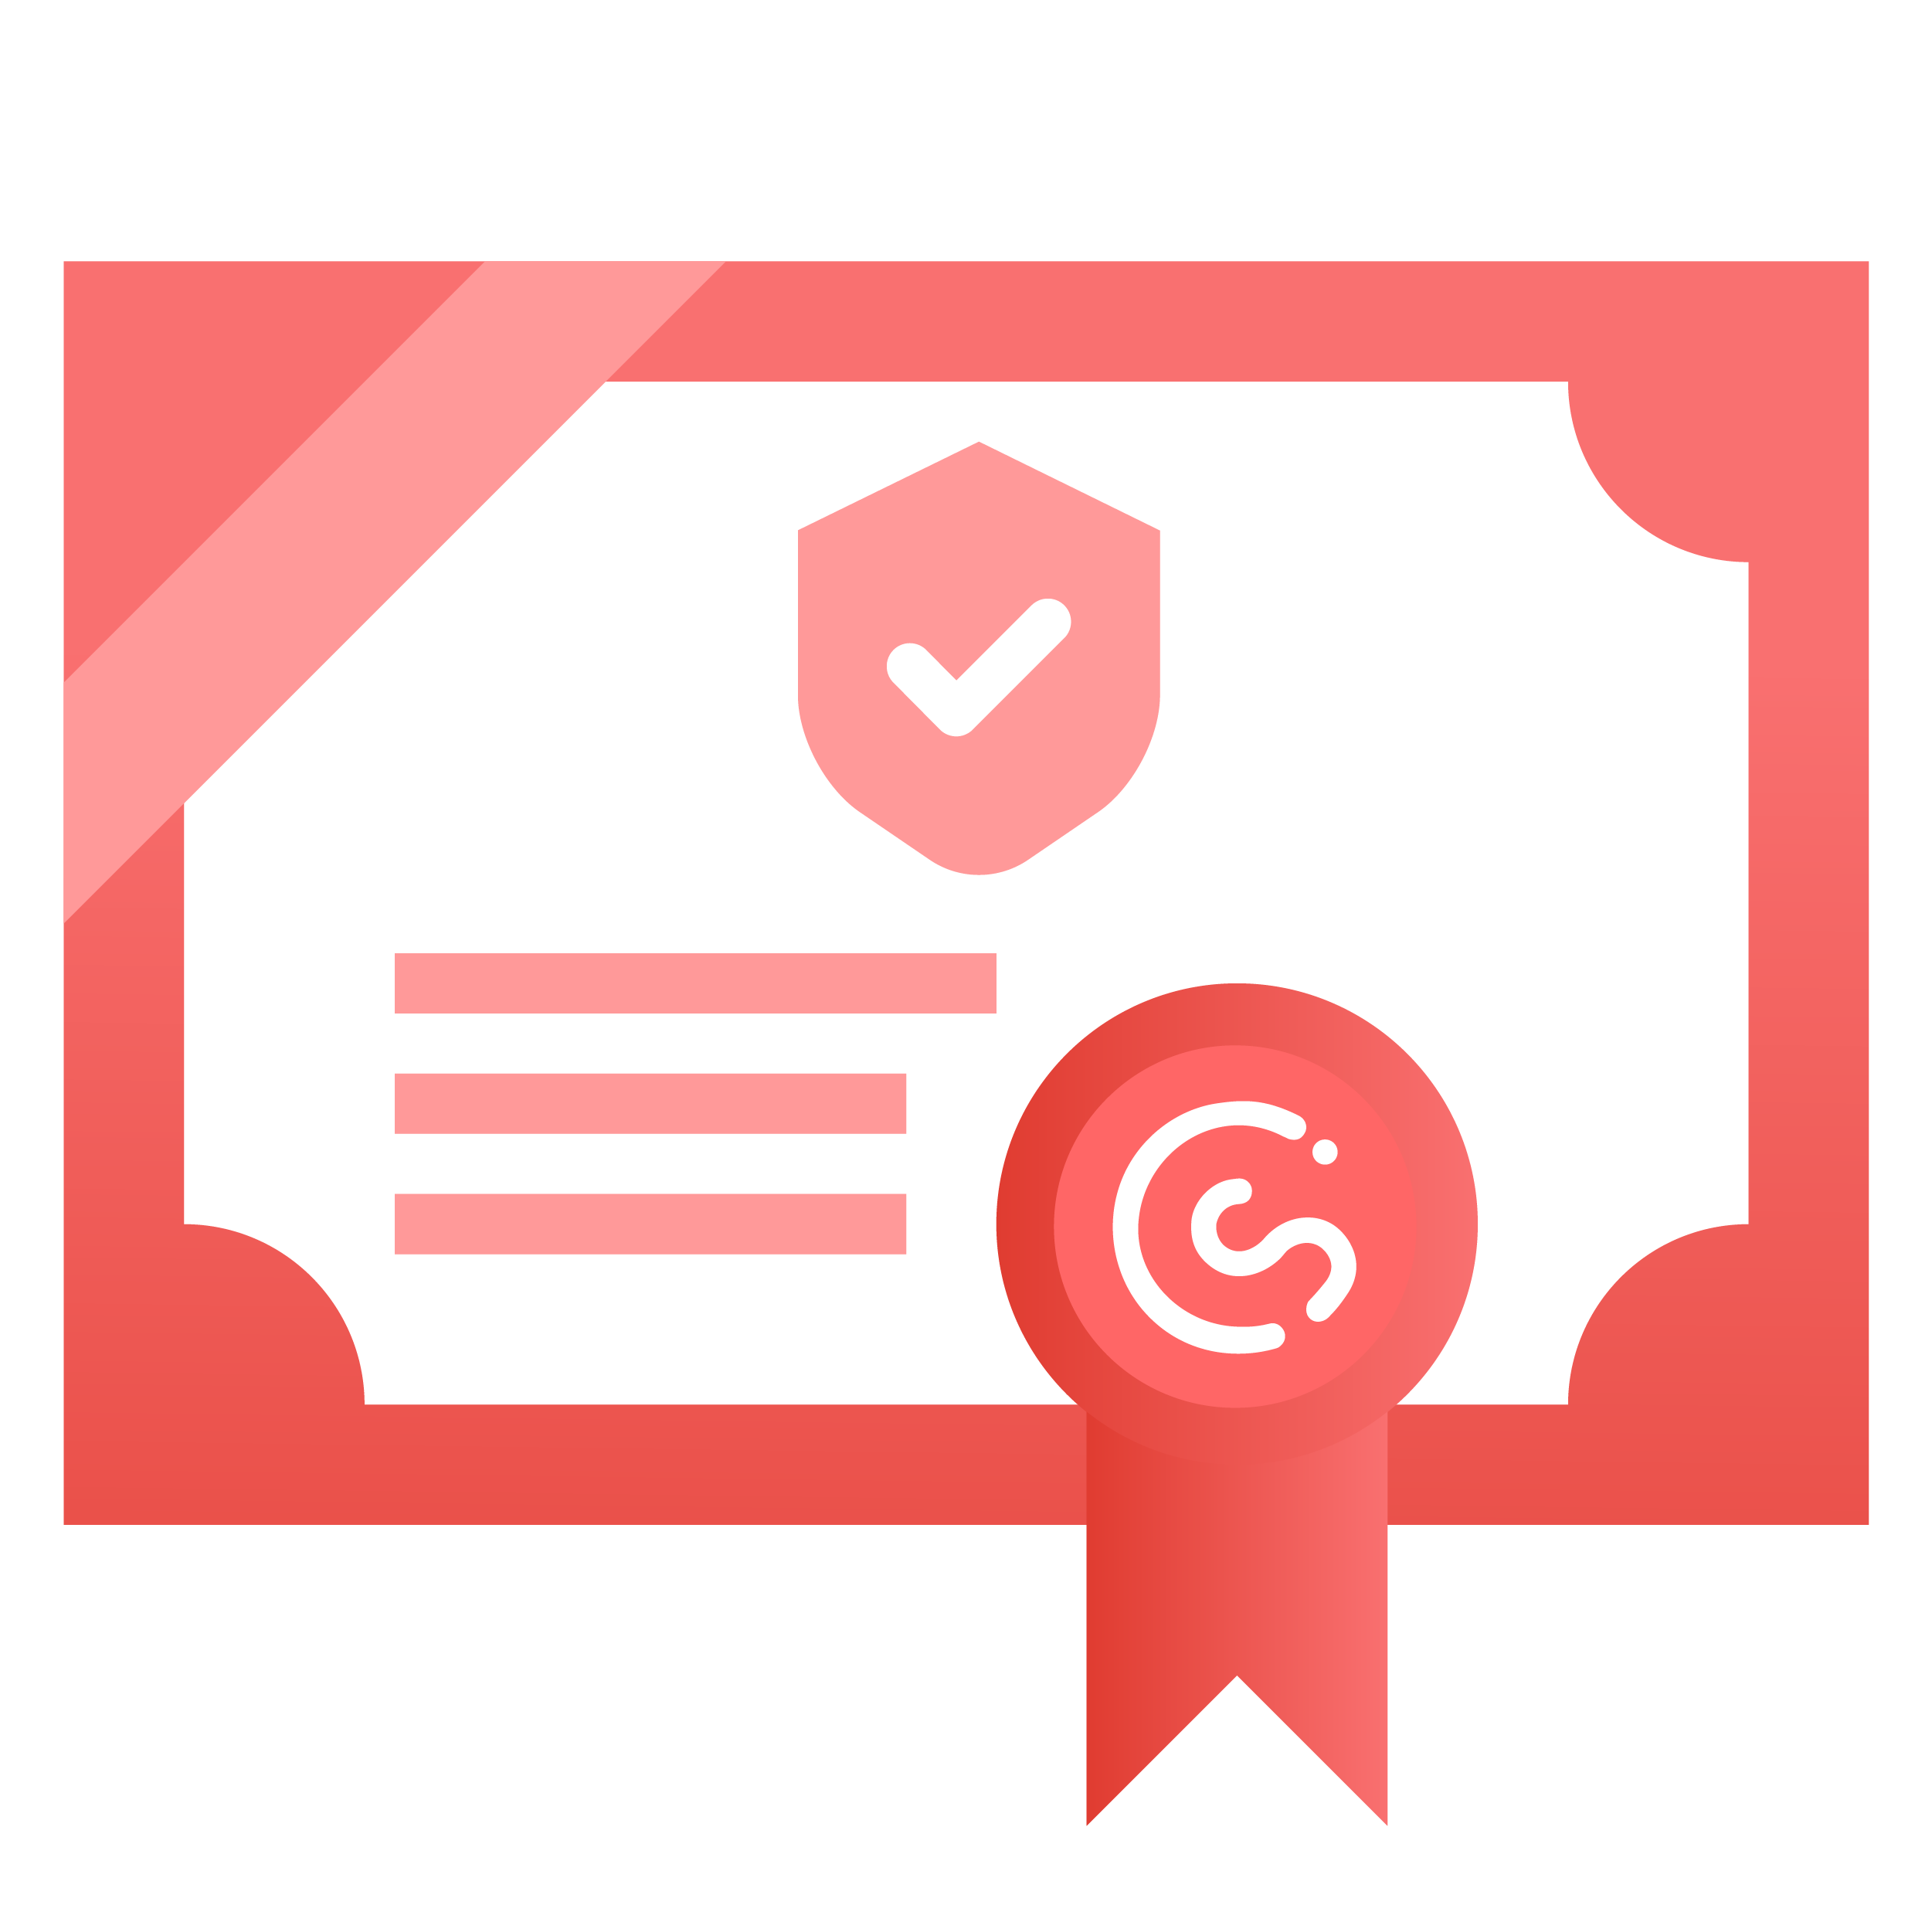 Certified Security Awareness Training icon